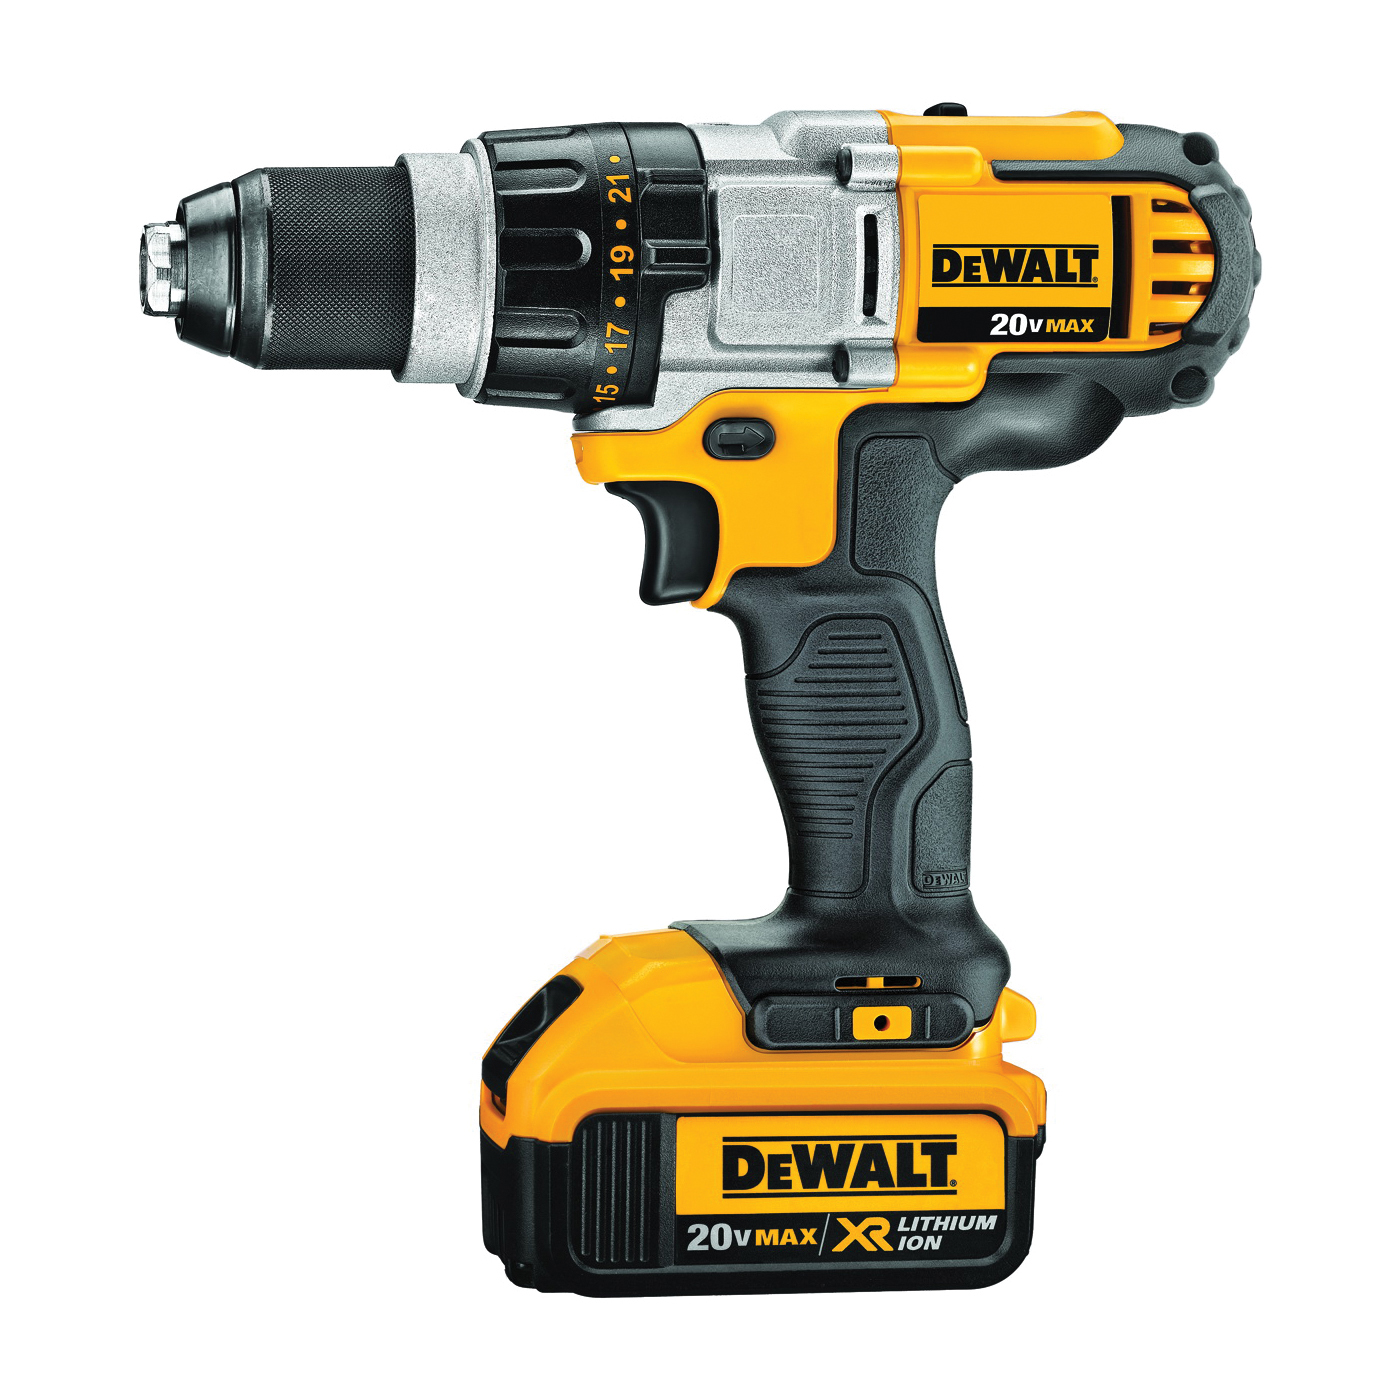 Picture of DeWALT DCD980M2 Drill/Driver Kit, Kit, 20 V Battery, 1/2 in Chuck, Ratcheting Chuck, Battery Included: Yes